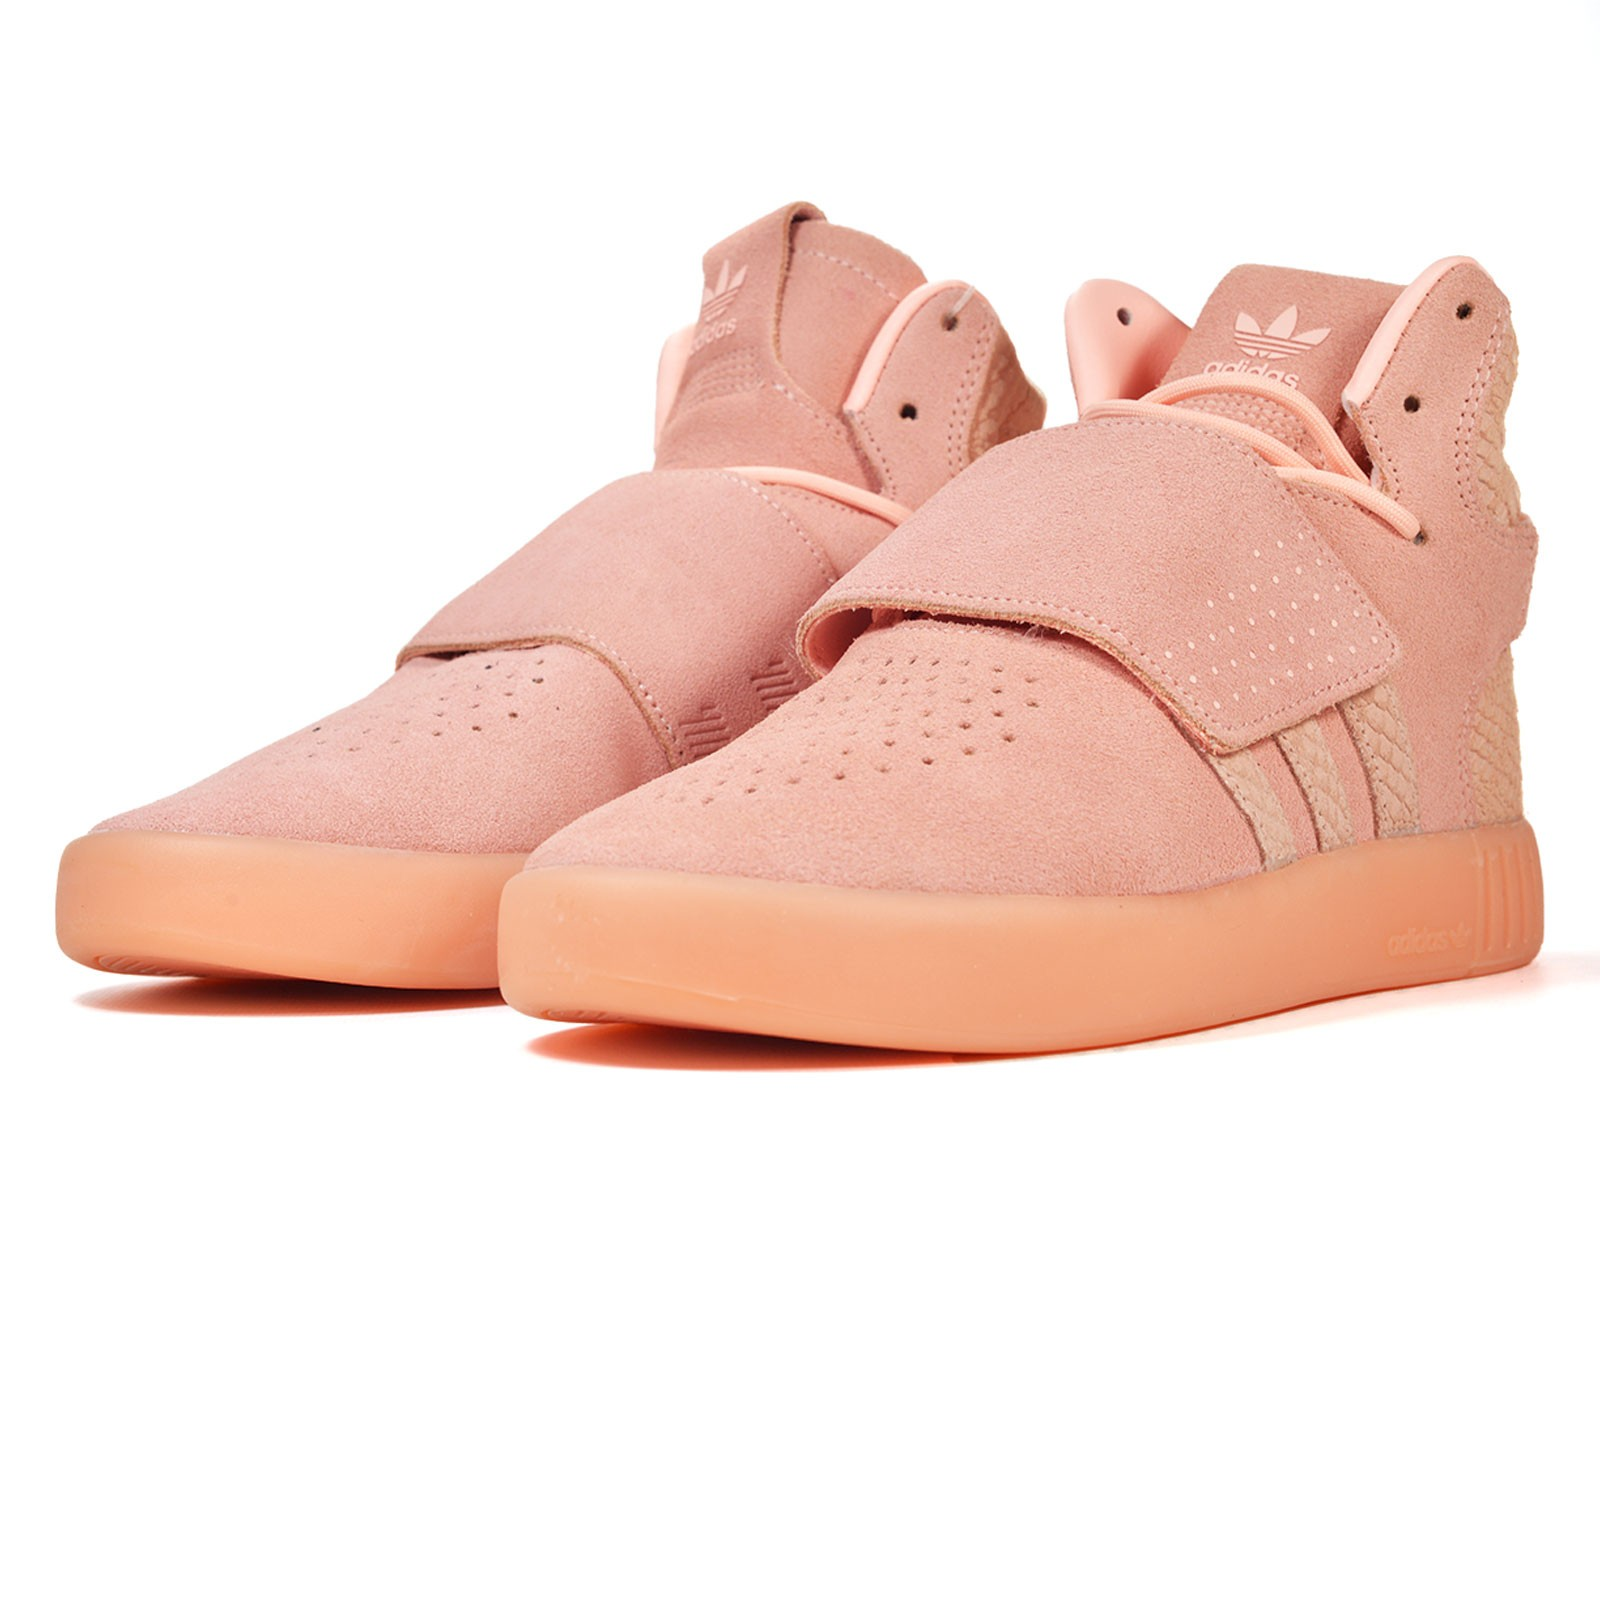 check out ce07b 61c83 BUTY ADIDAS TUBULAR INVADER STRAP BB0390 38 2/3 - 6801327469 ...